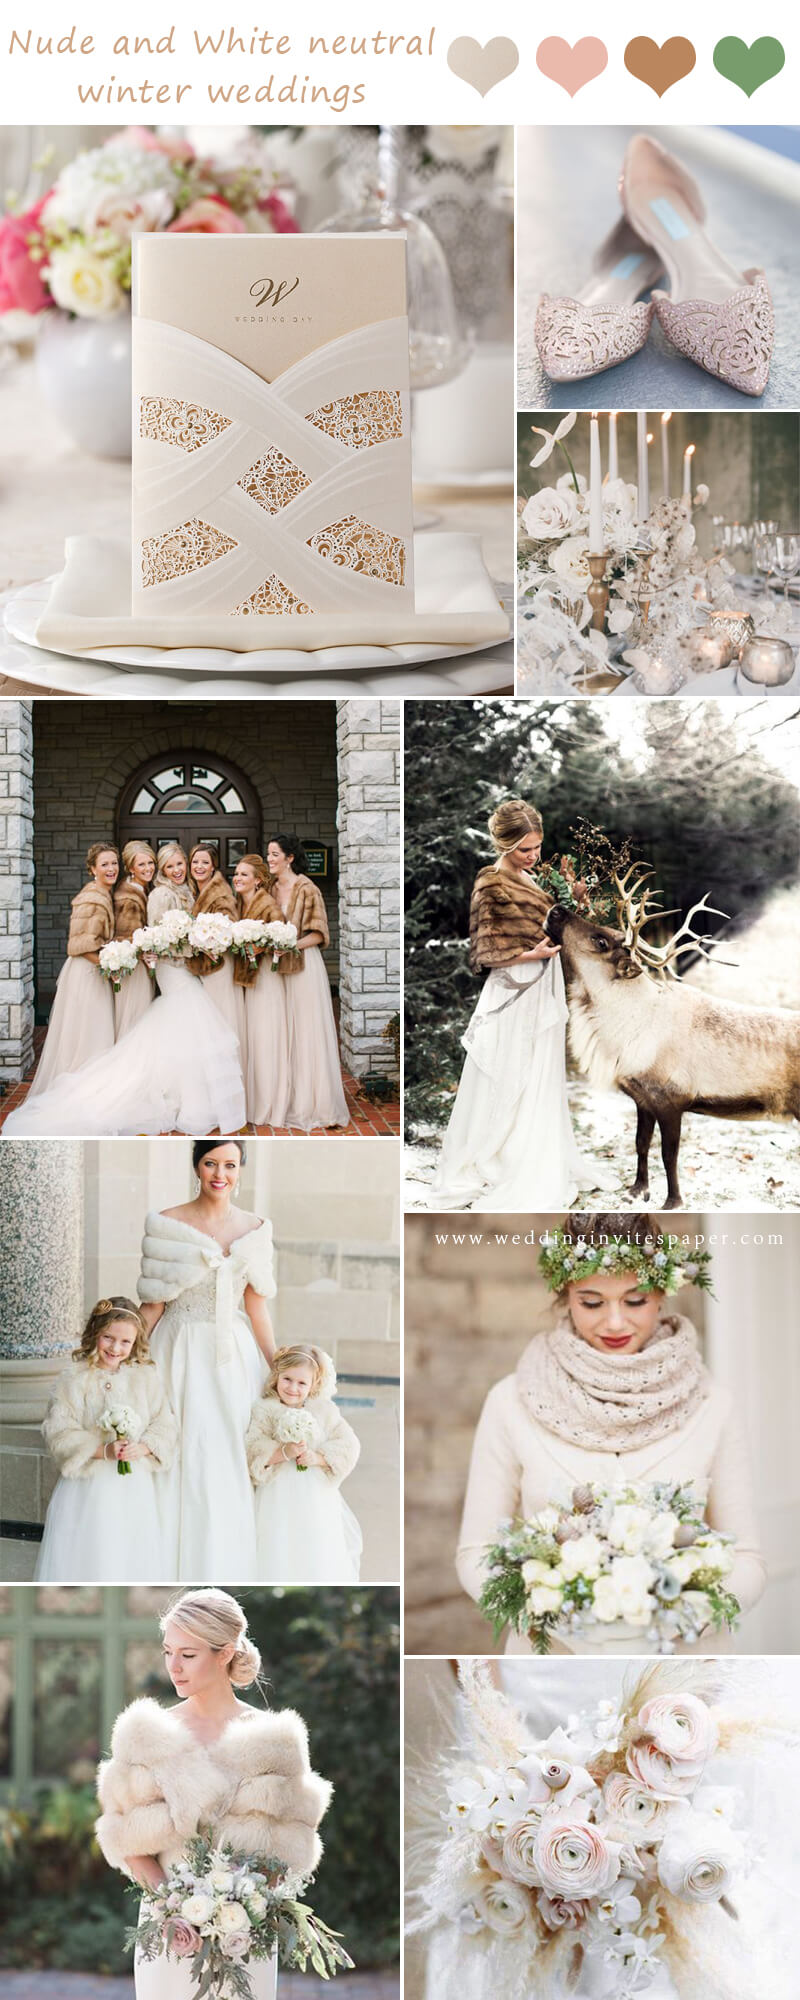 Nude and White neutral winter weddings.jpg